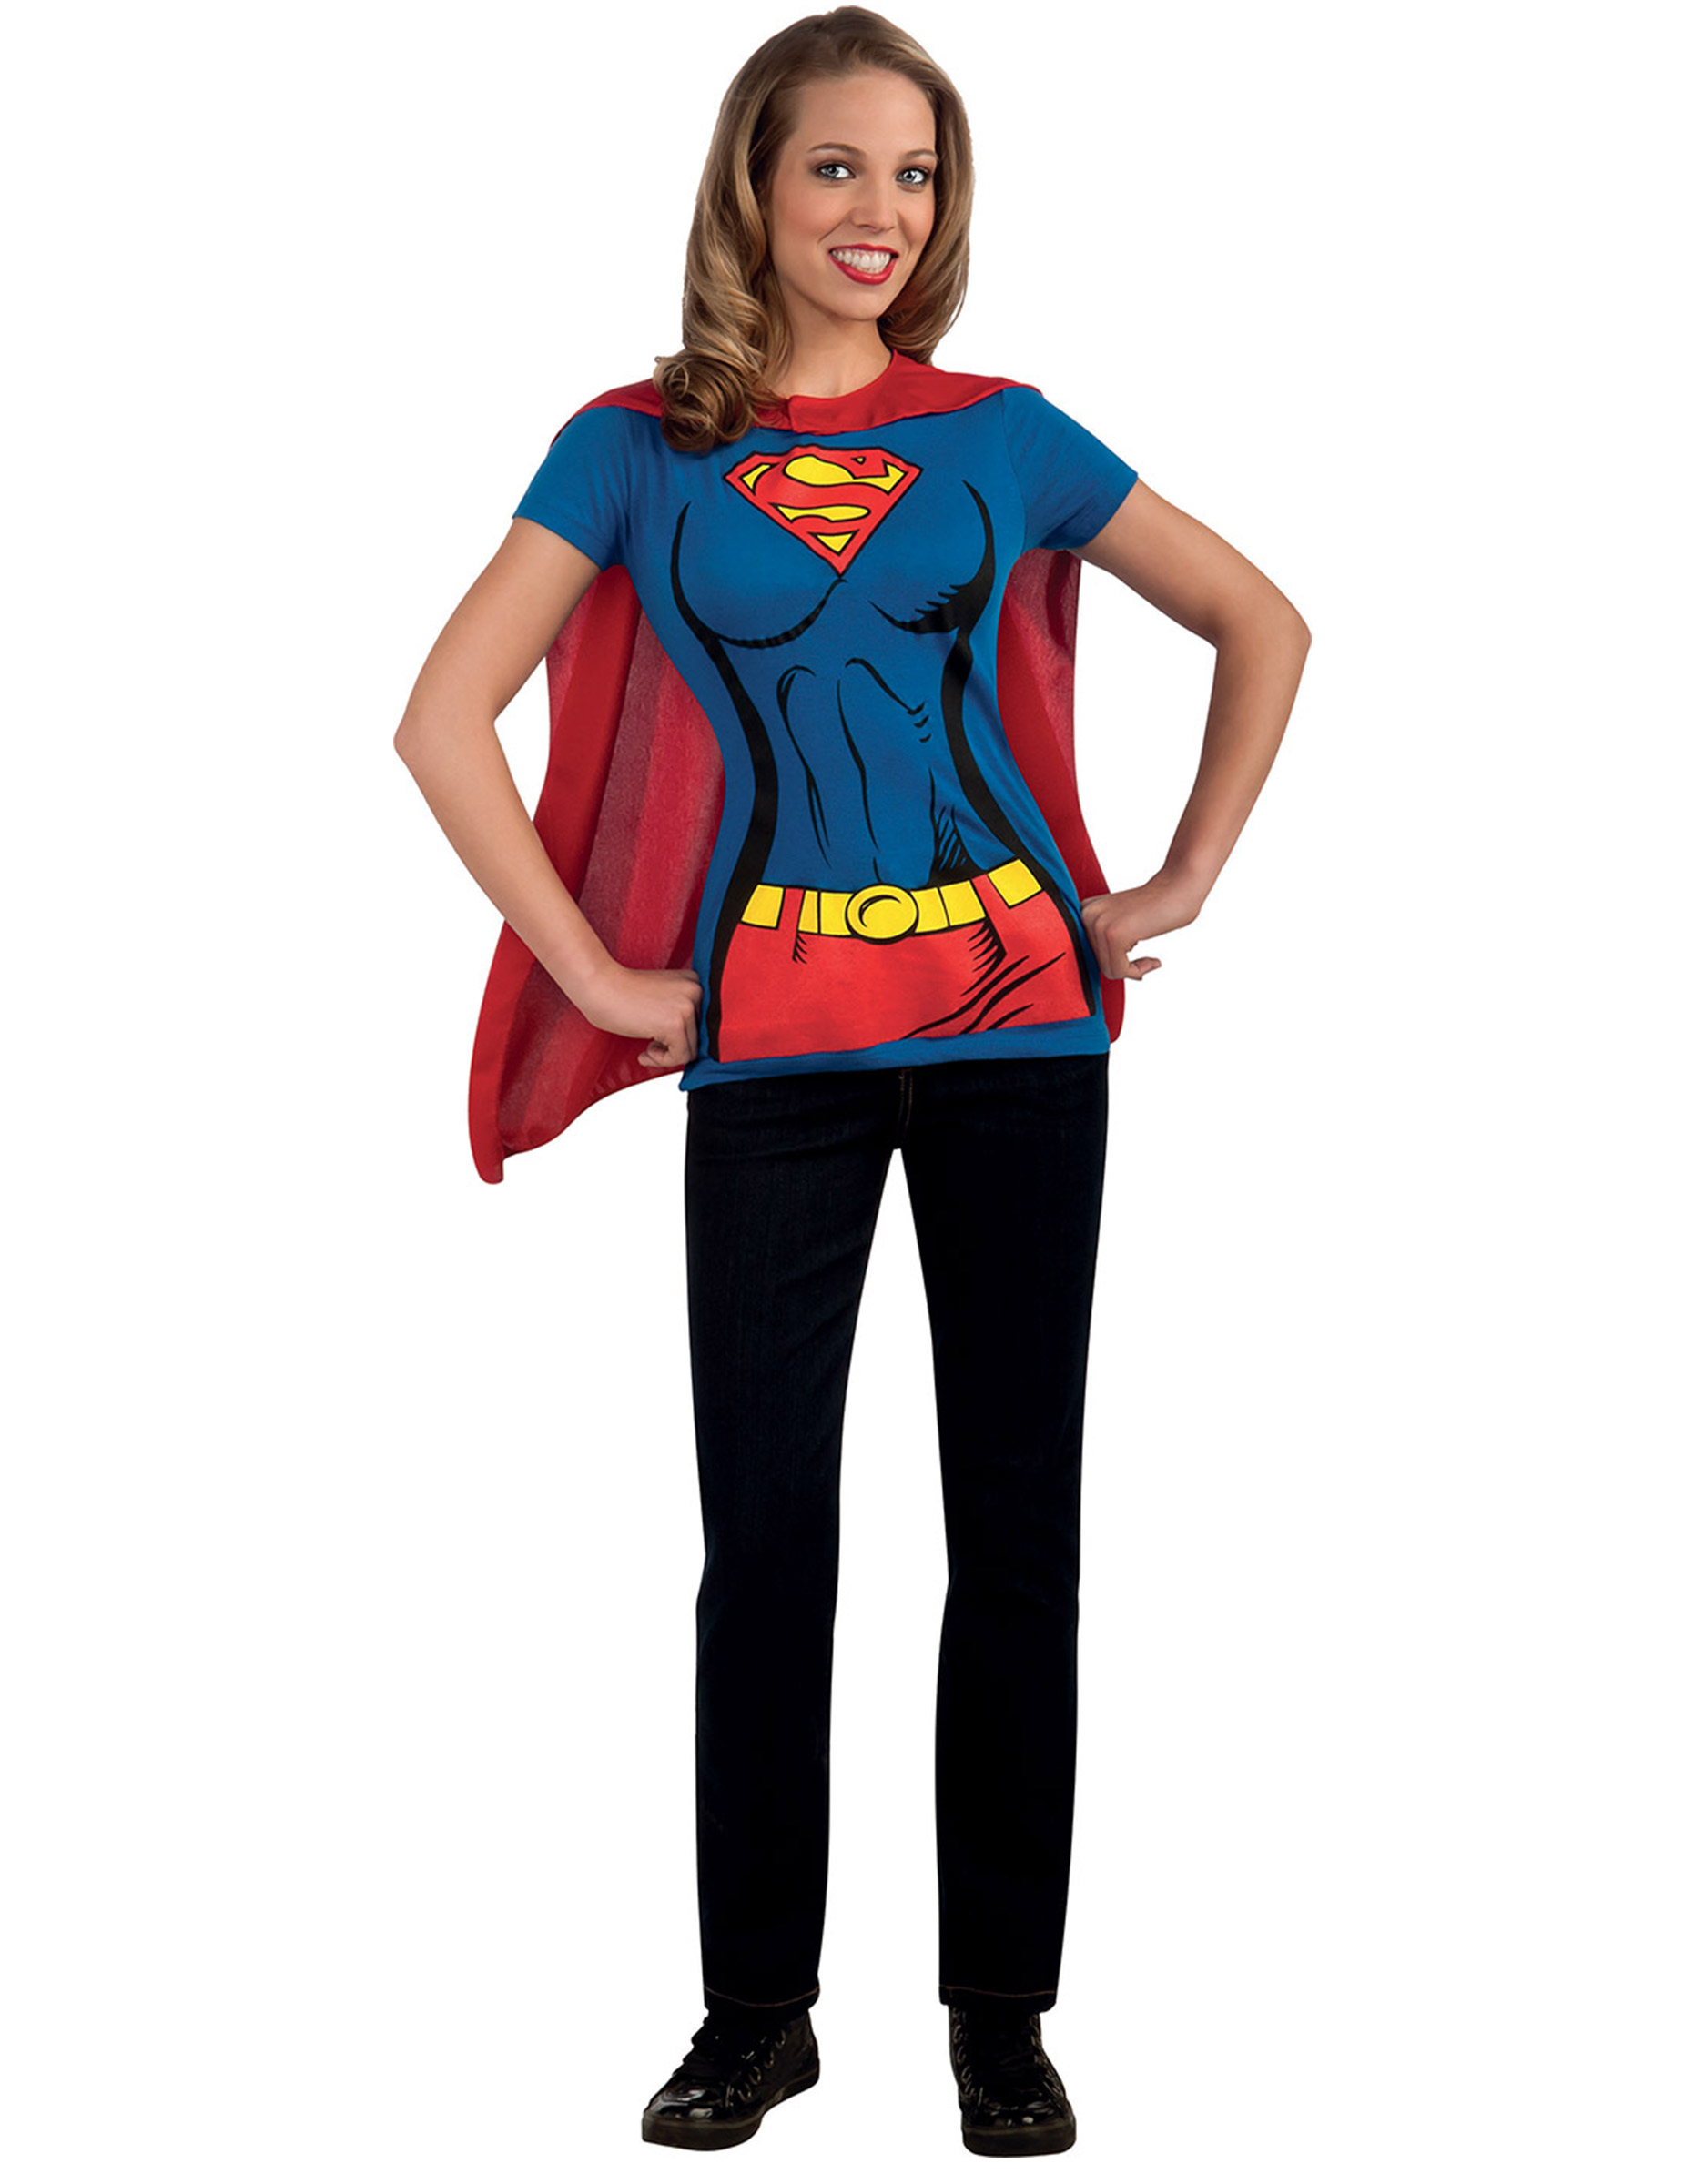 supergirl t shirt f r erwachsene kost me f r erwachsene. Black Bedroom Furniture Sets. Home Design Ideas